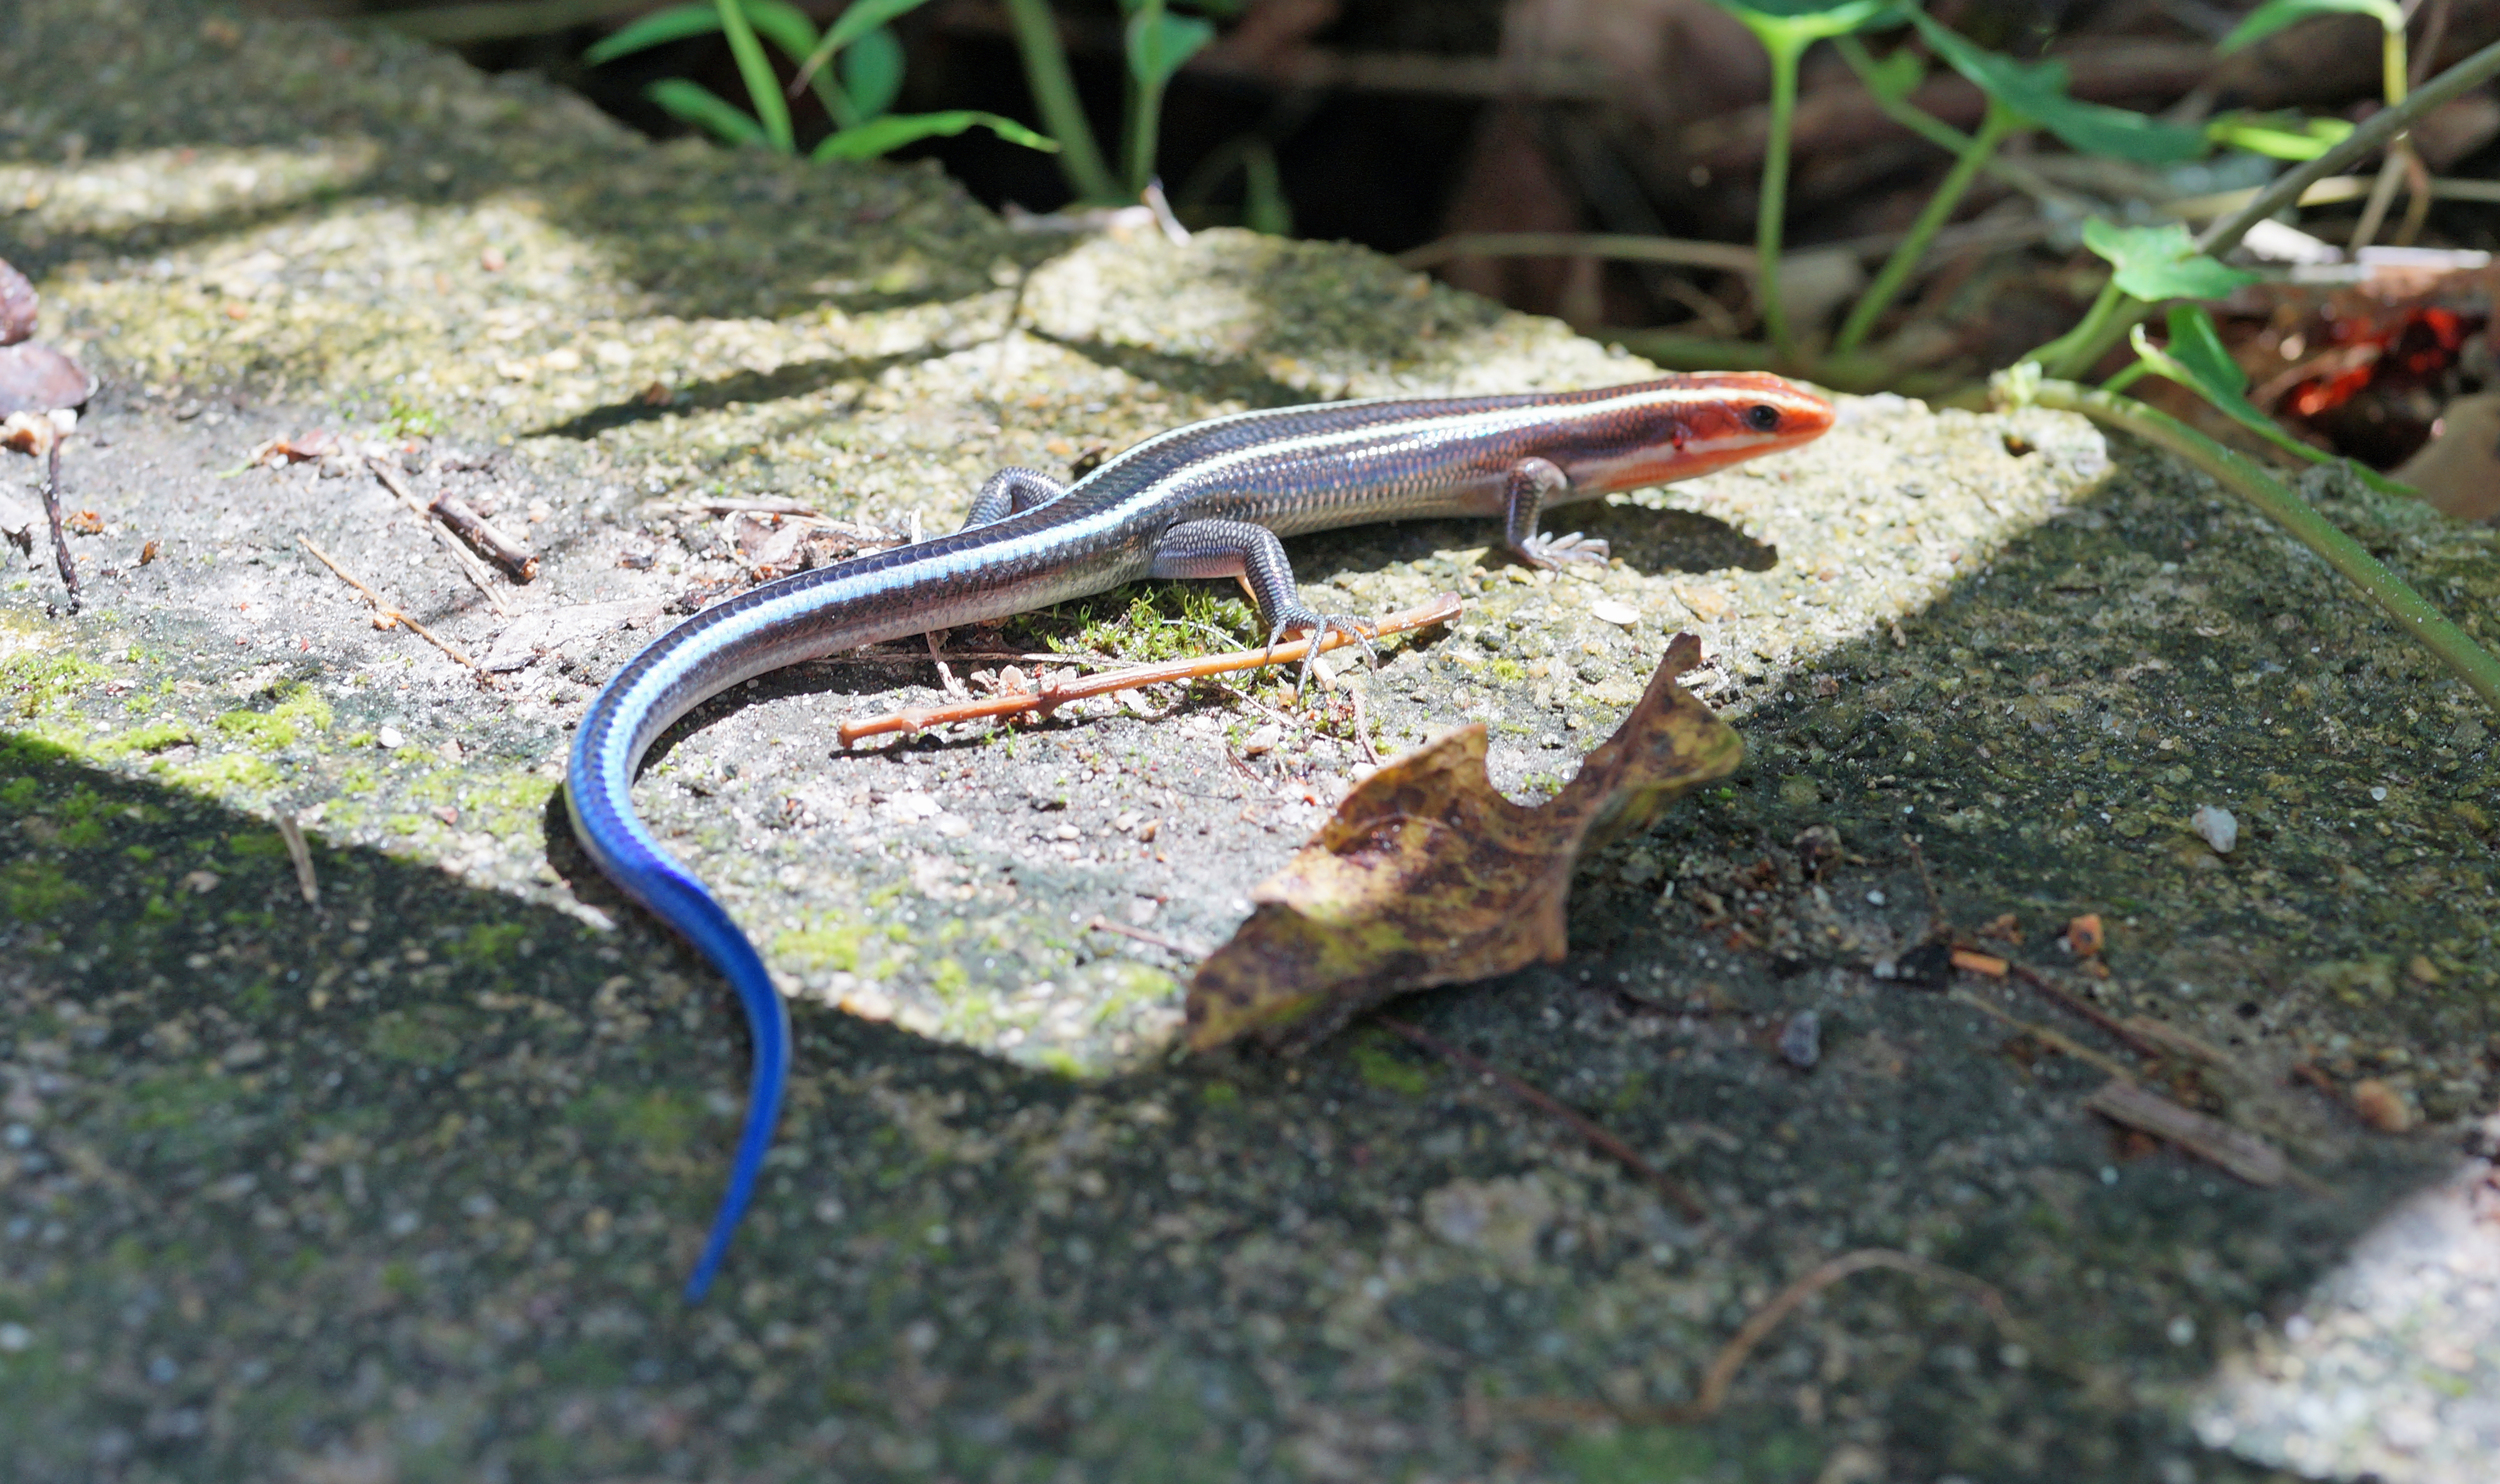 ...and back to the real world, I have never seen a lizard like this in Hong Kong.. very neat.